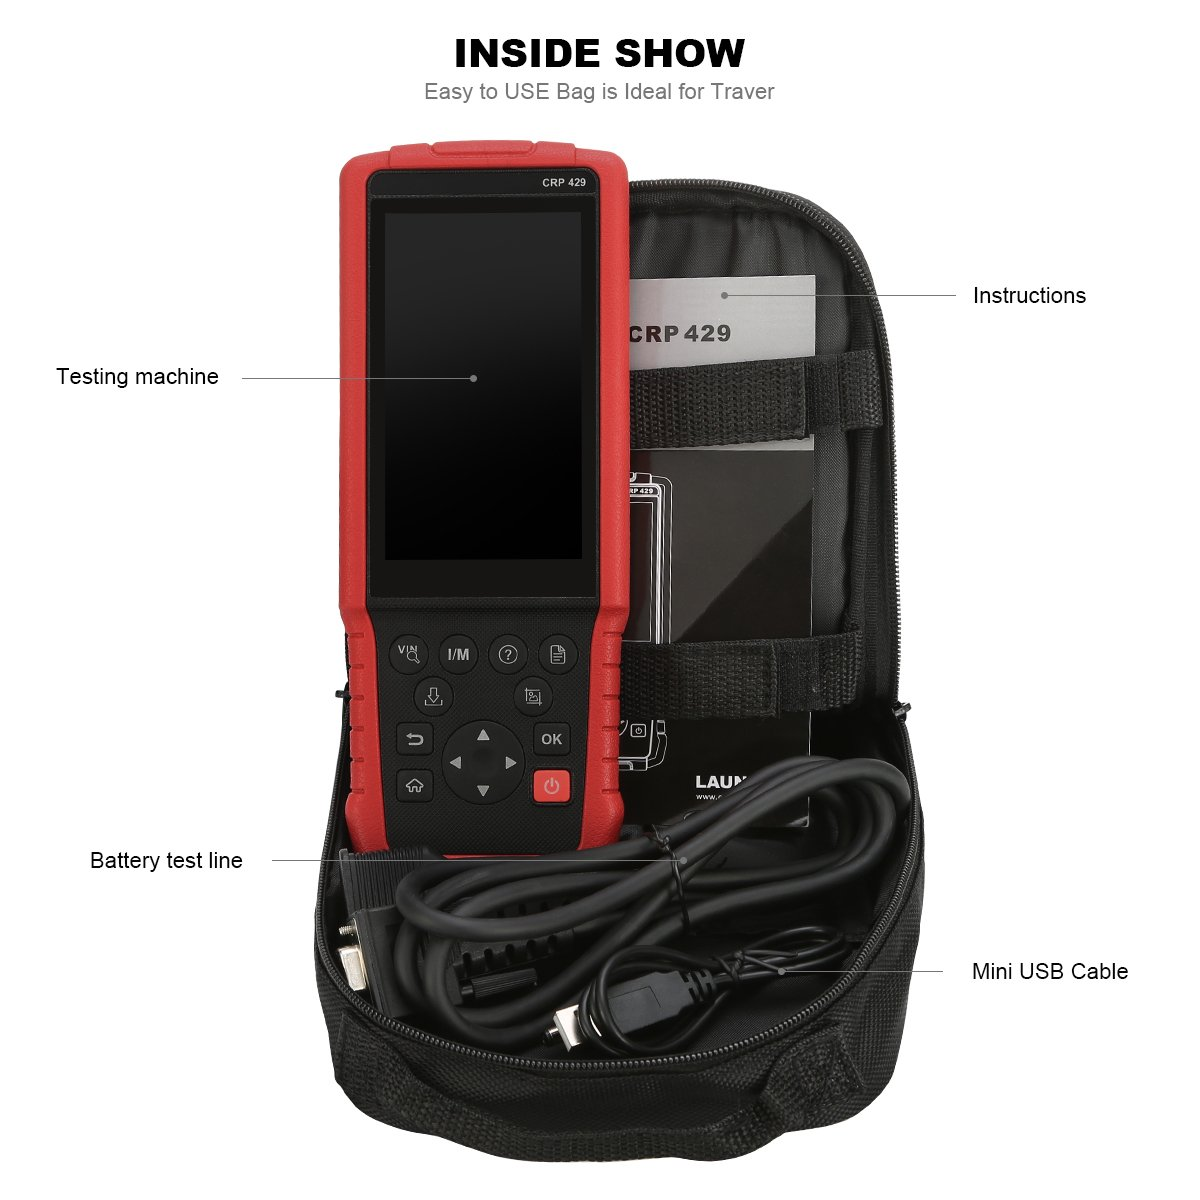 LAUNCH CRP429 OBD2 Scanner Diagnostic Scan Tool with All System Diagnoses and Service Functions of Injector Coding, IMMO Service and Oil Reset, EPB, BMS, SAS, DPF (Advanced Version of CRP Touch Pro) by LAUNCH (Image #3)